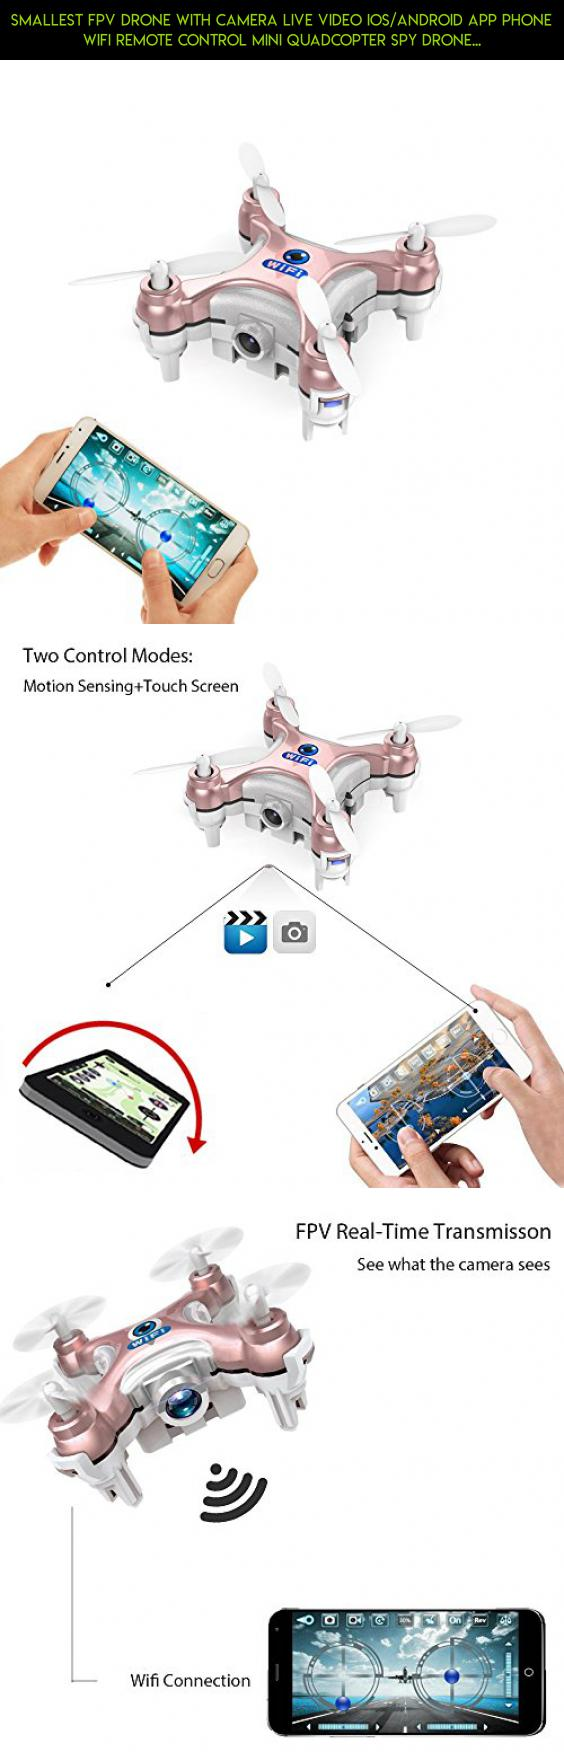 Smallest FPV Drone with Camera Live Video iOS/Android APP Phone Wifi